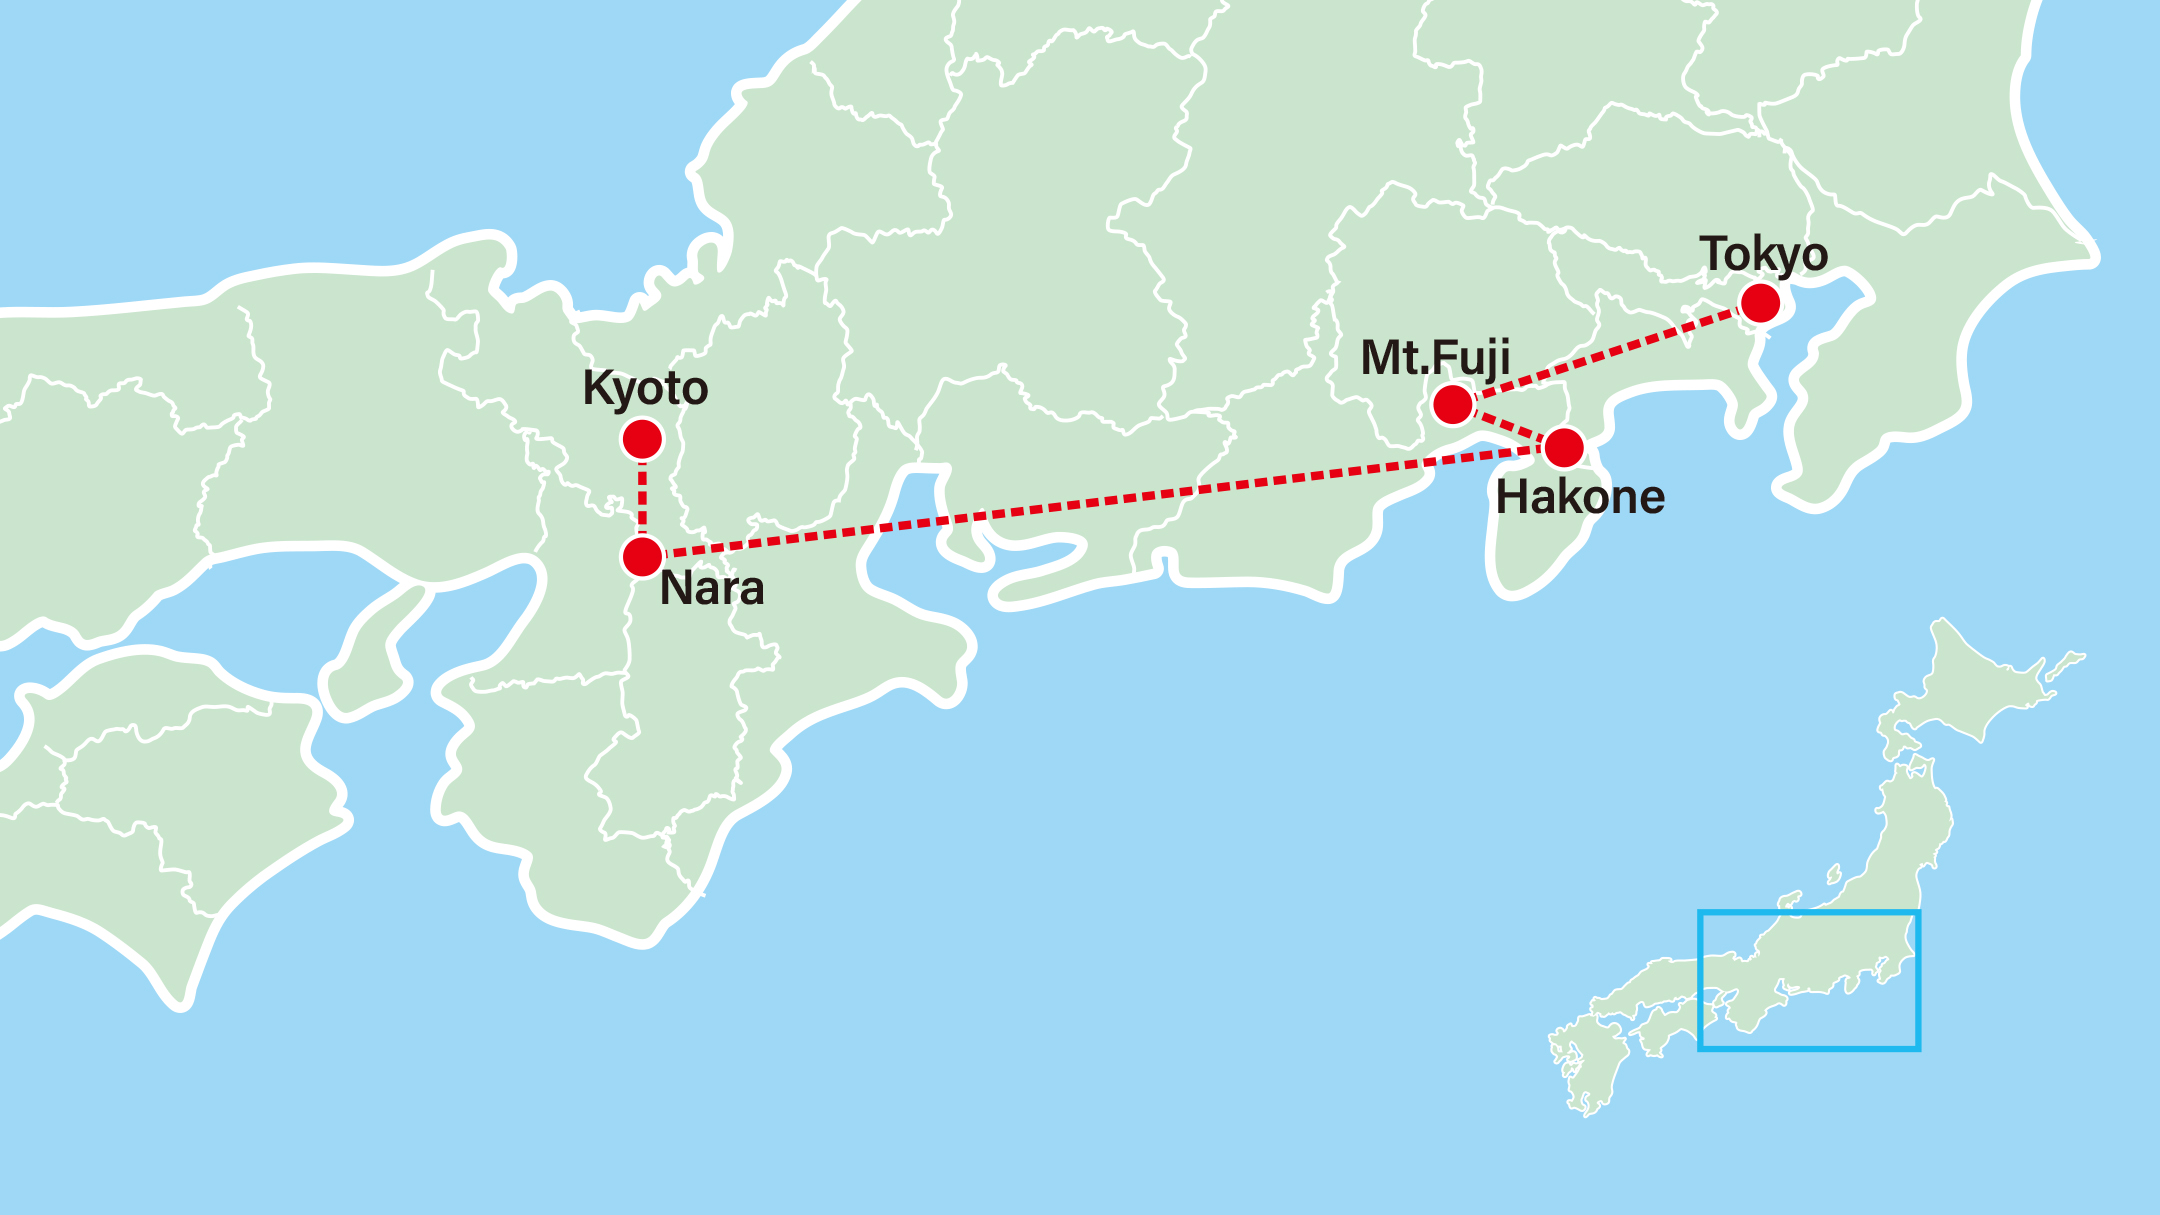 Golden Route of Japan Tour Map